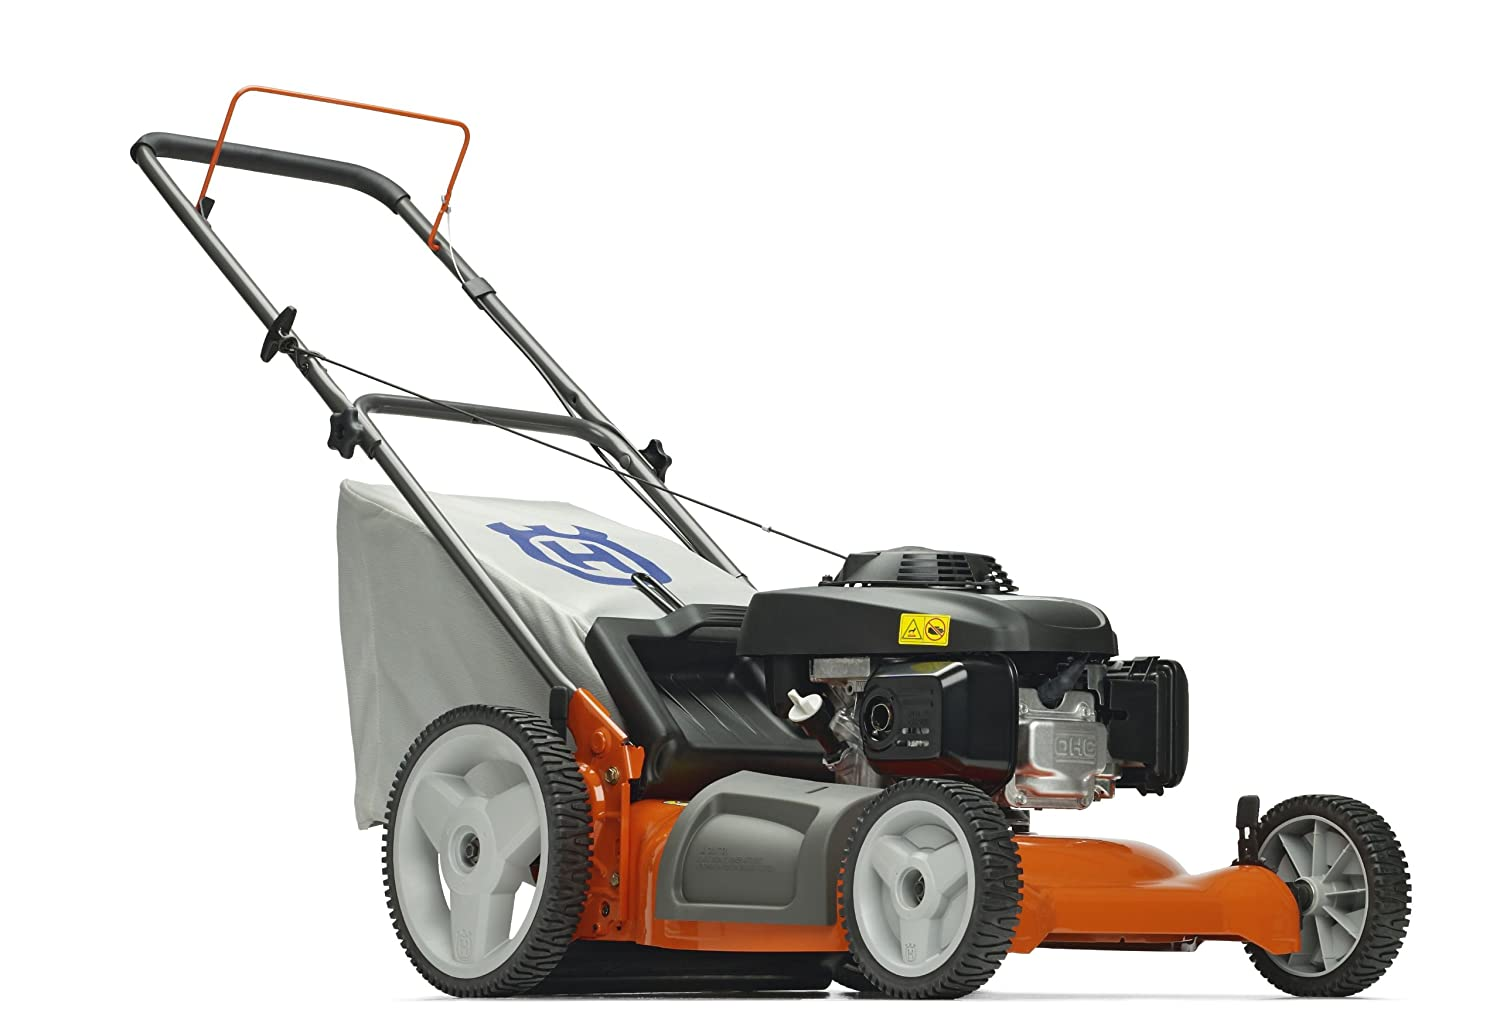 Husqvarna 7021P 21-inch 160cc Honda GCV160 Gas-powered Lawn Mower